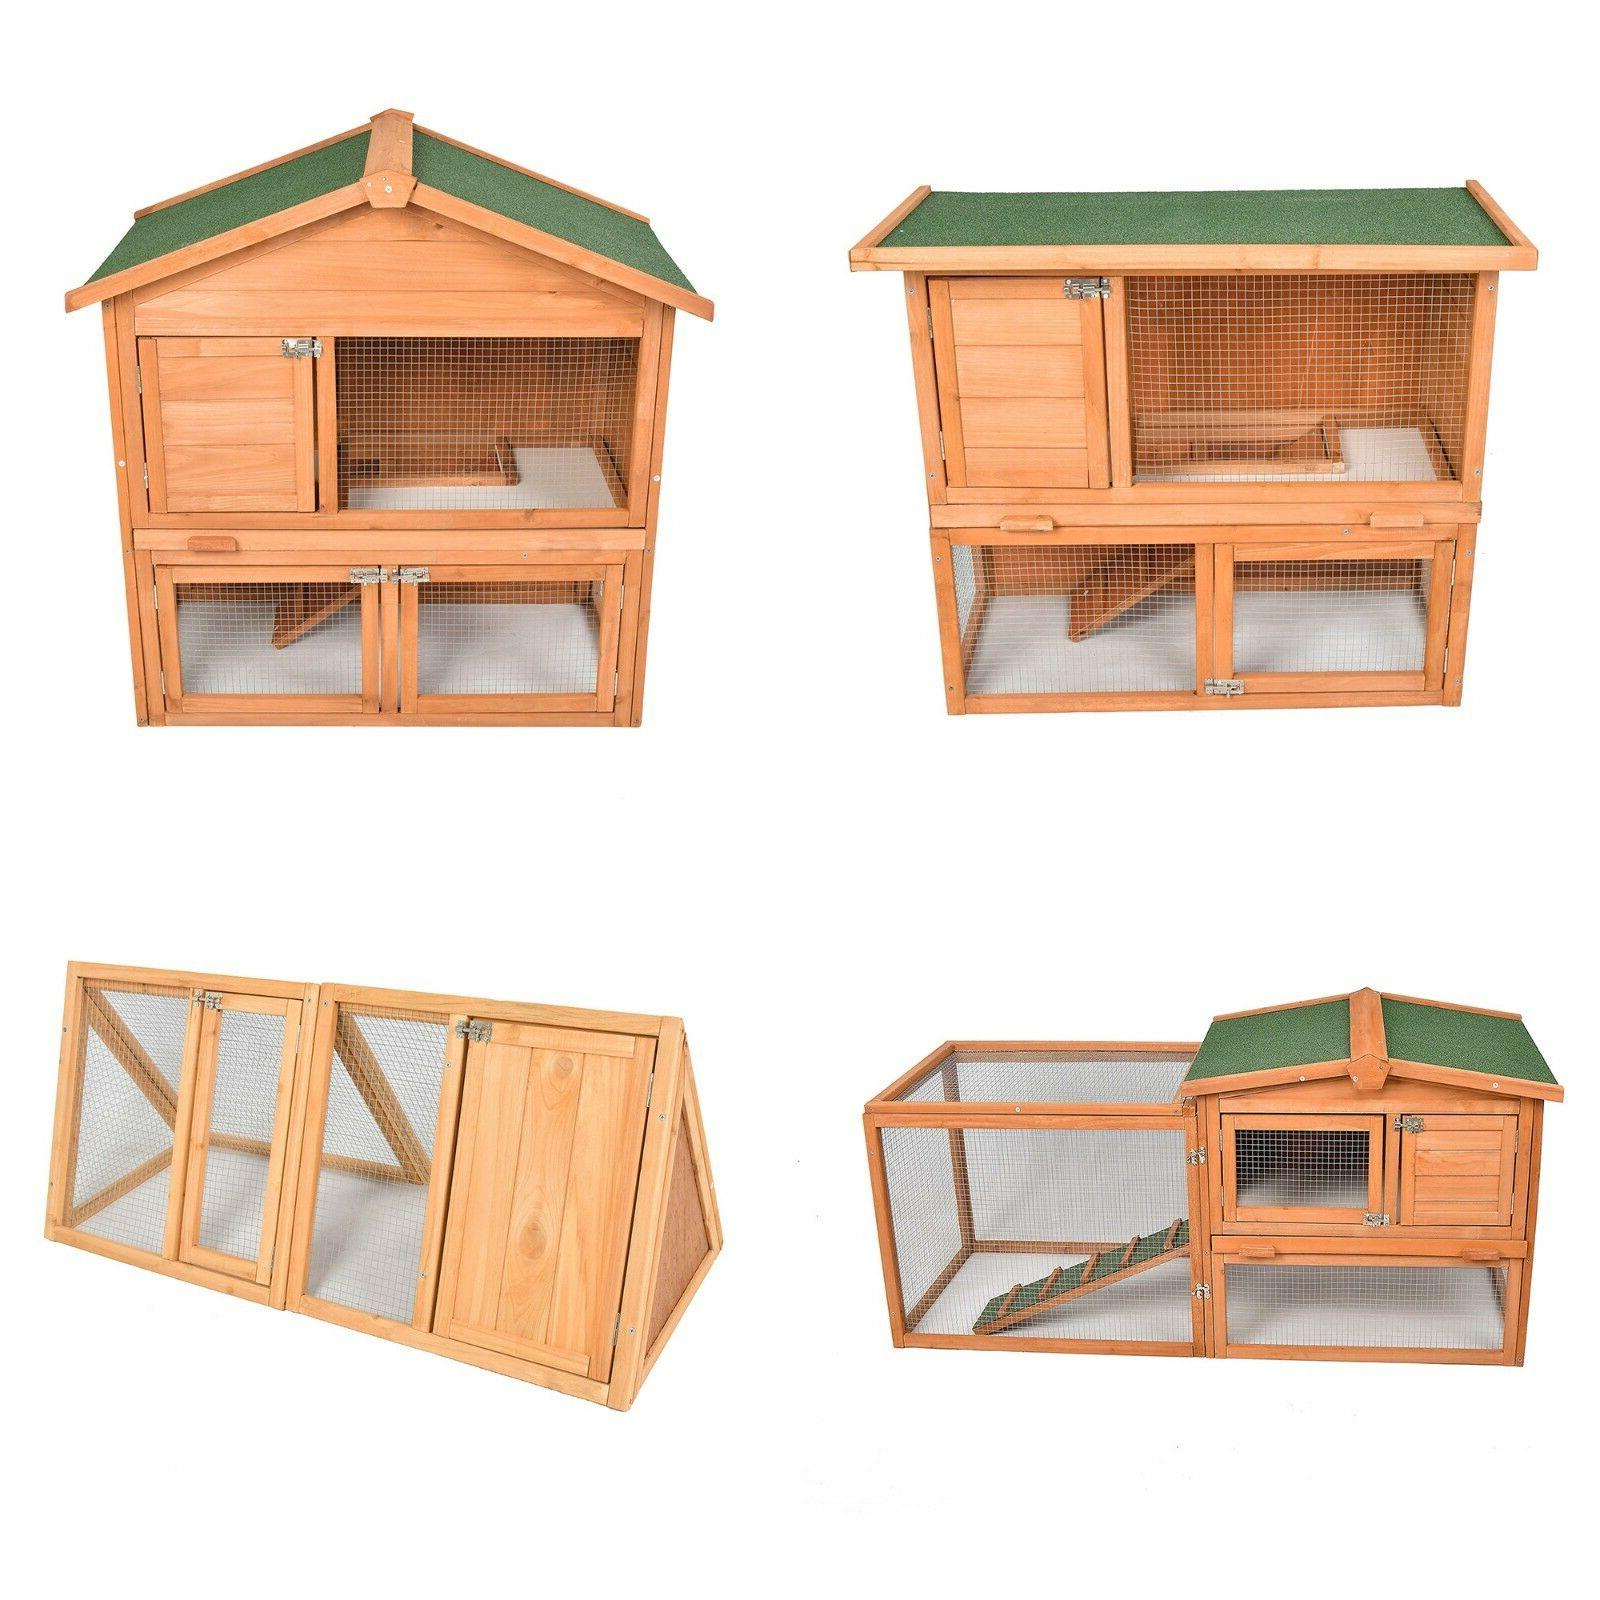 Wooden Coop Hutch Cage Outdoor Indoors W/ Run 80'